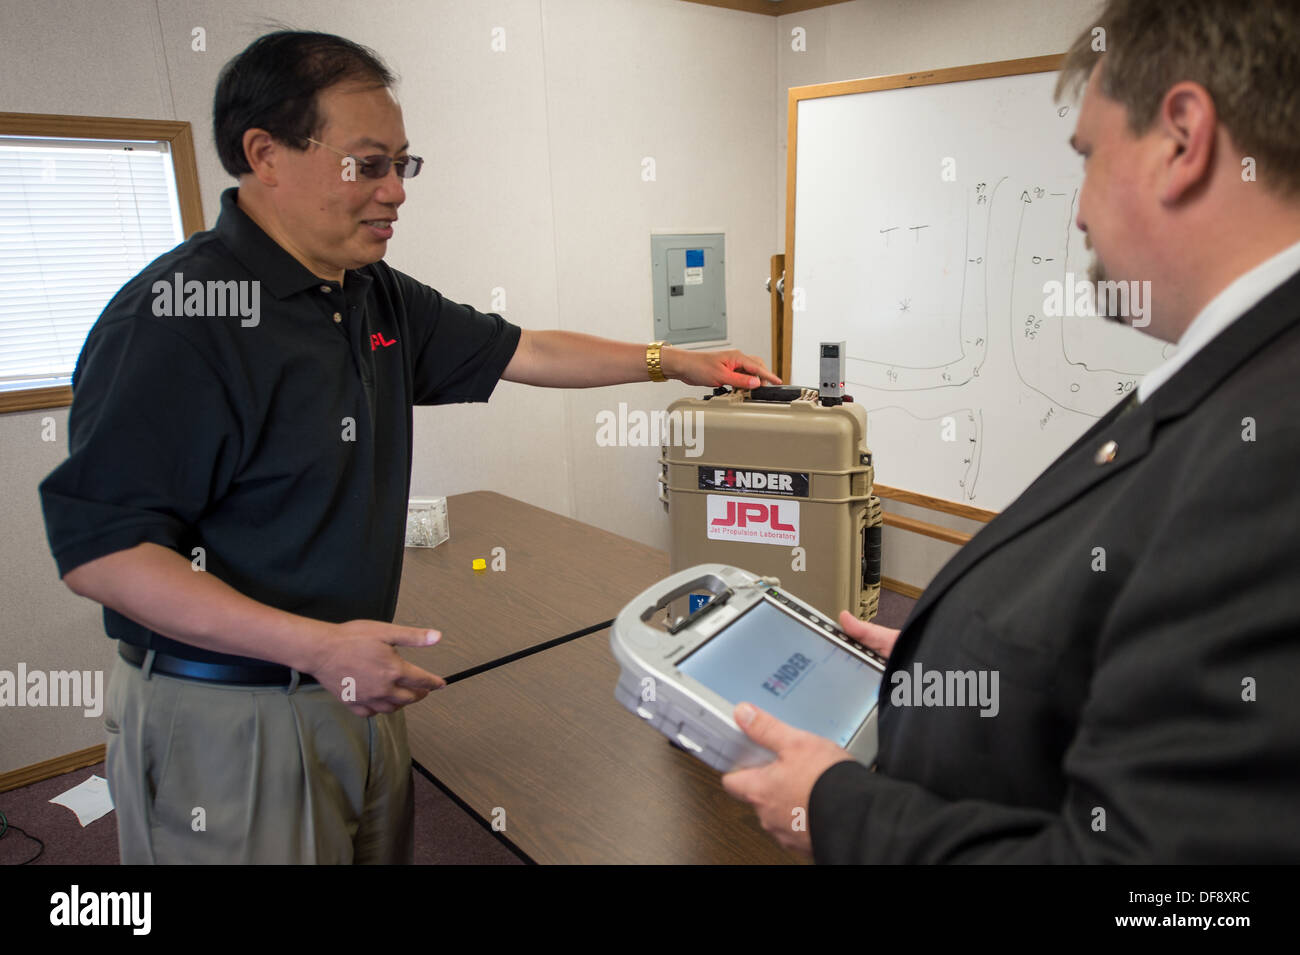 FINDER finder Finding Individuals for Disaster and Emergency Response - Stock Image